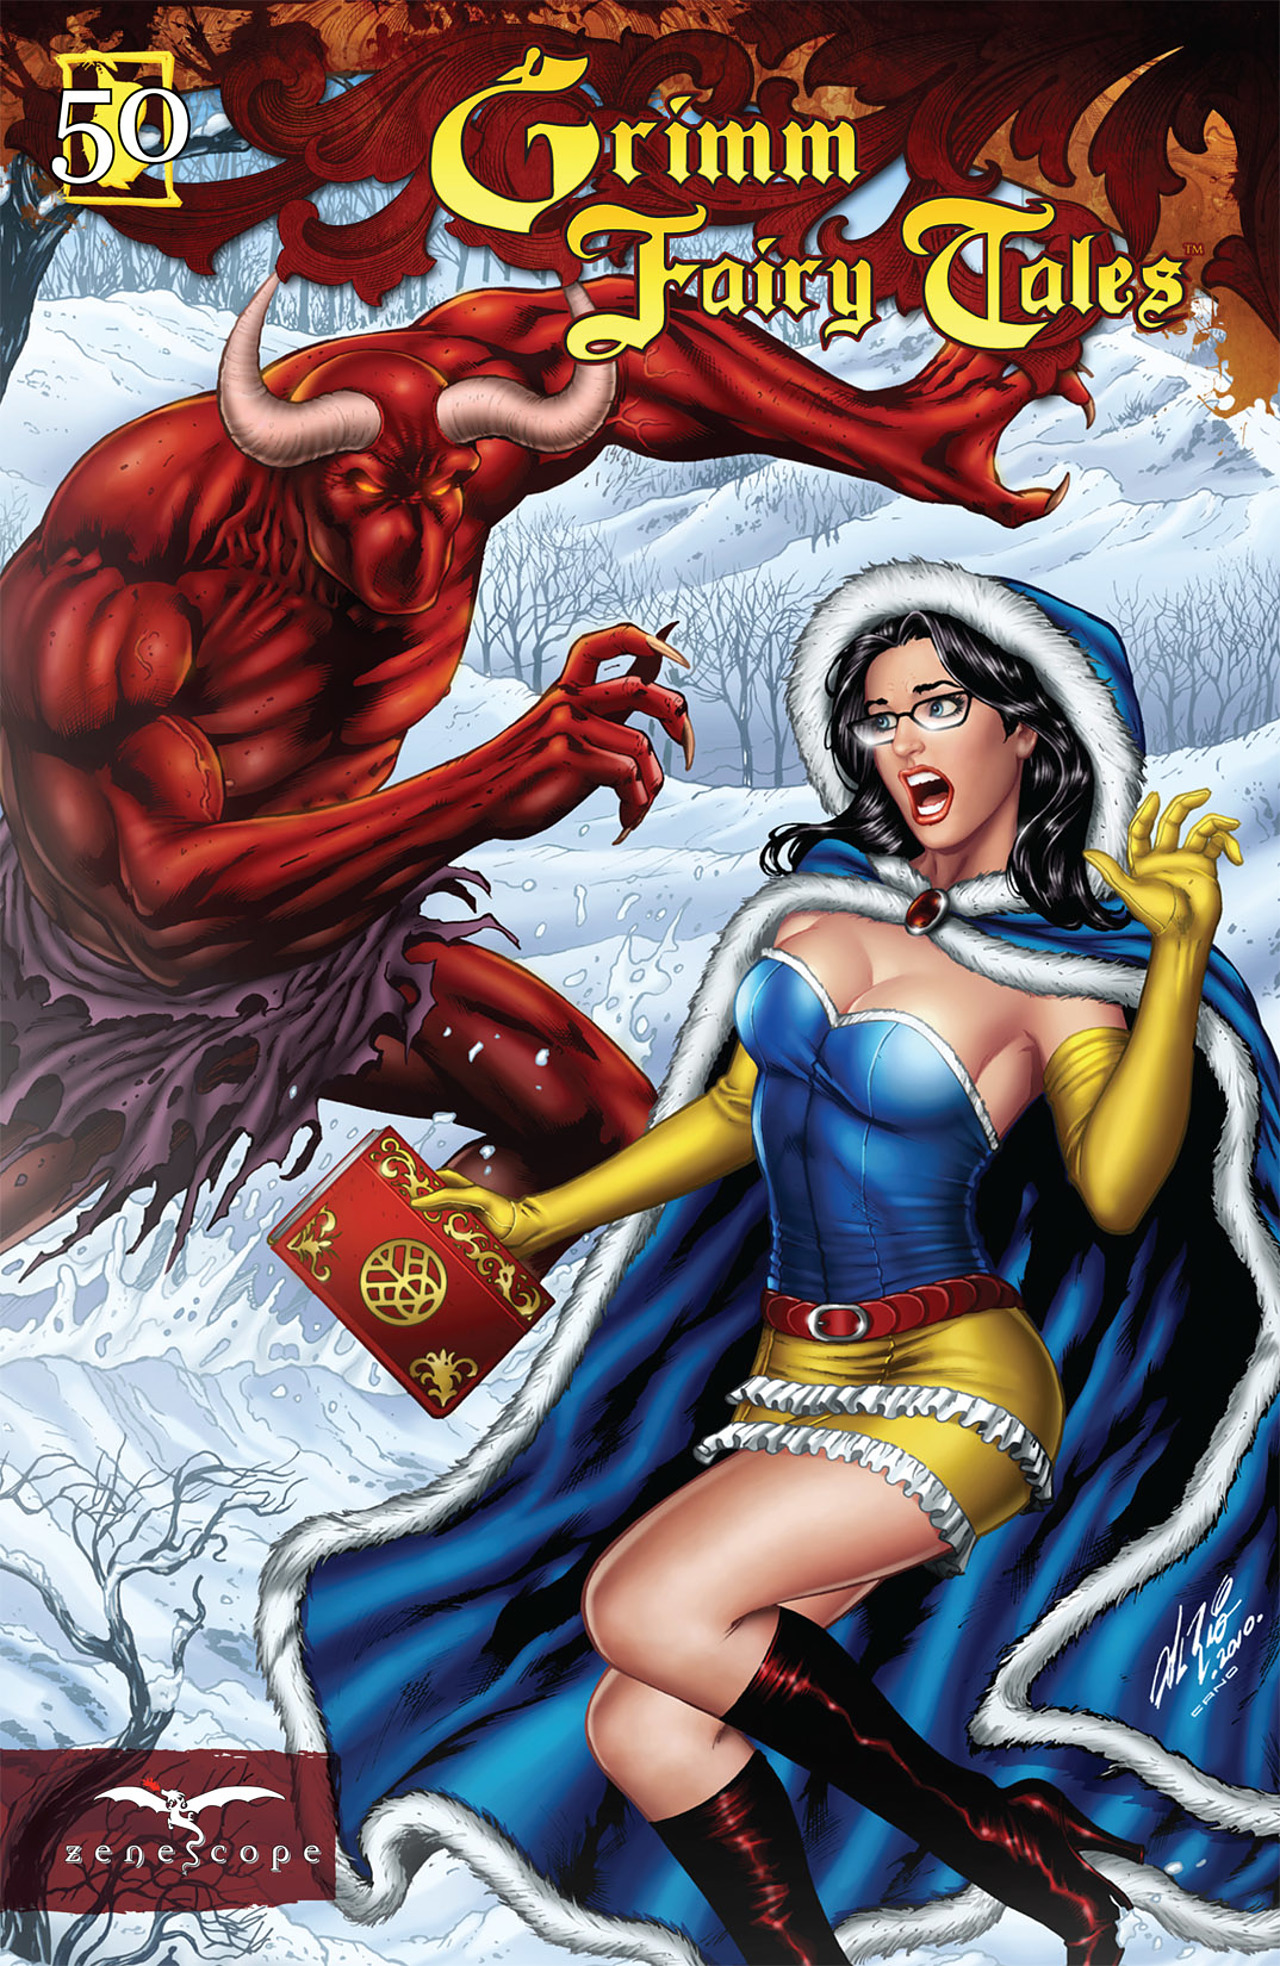 Grimm Fairy Tales (2005) Issue #50 #53 - English 1